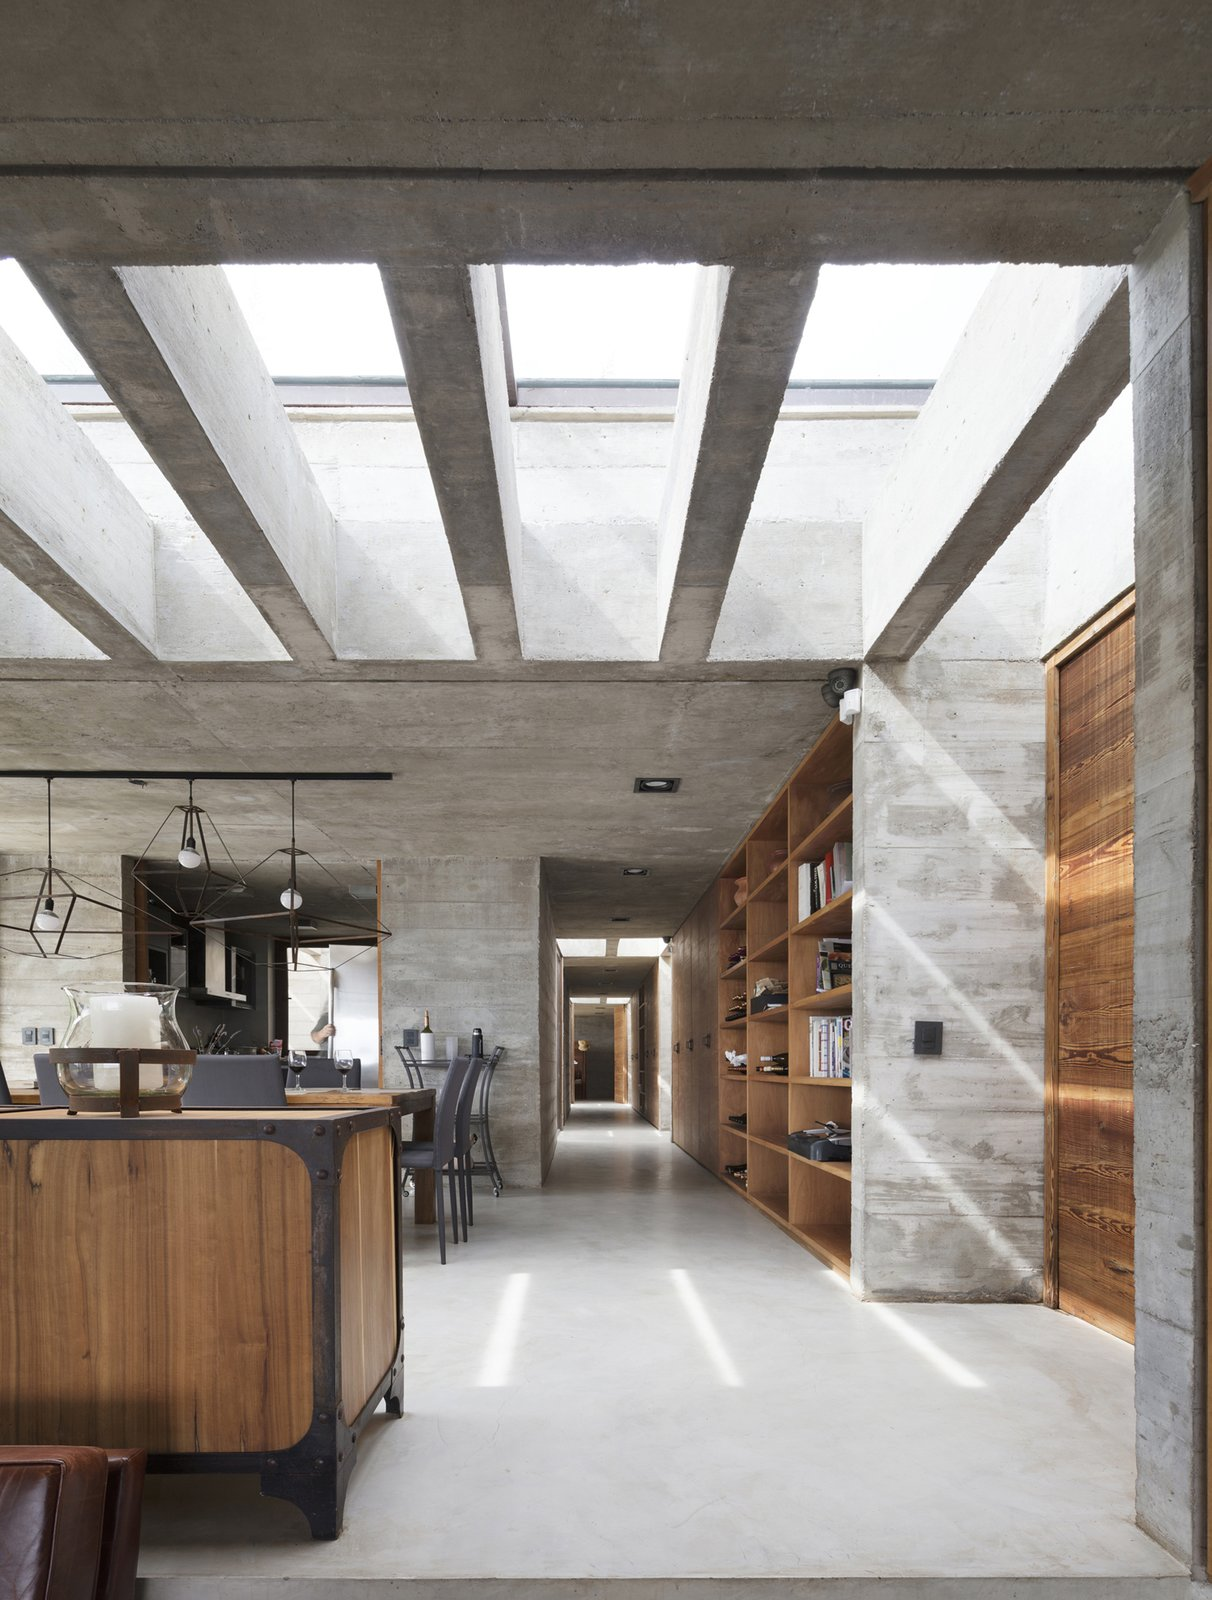 Casa FM interior with skylights